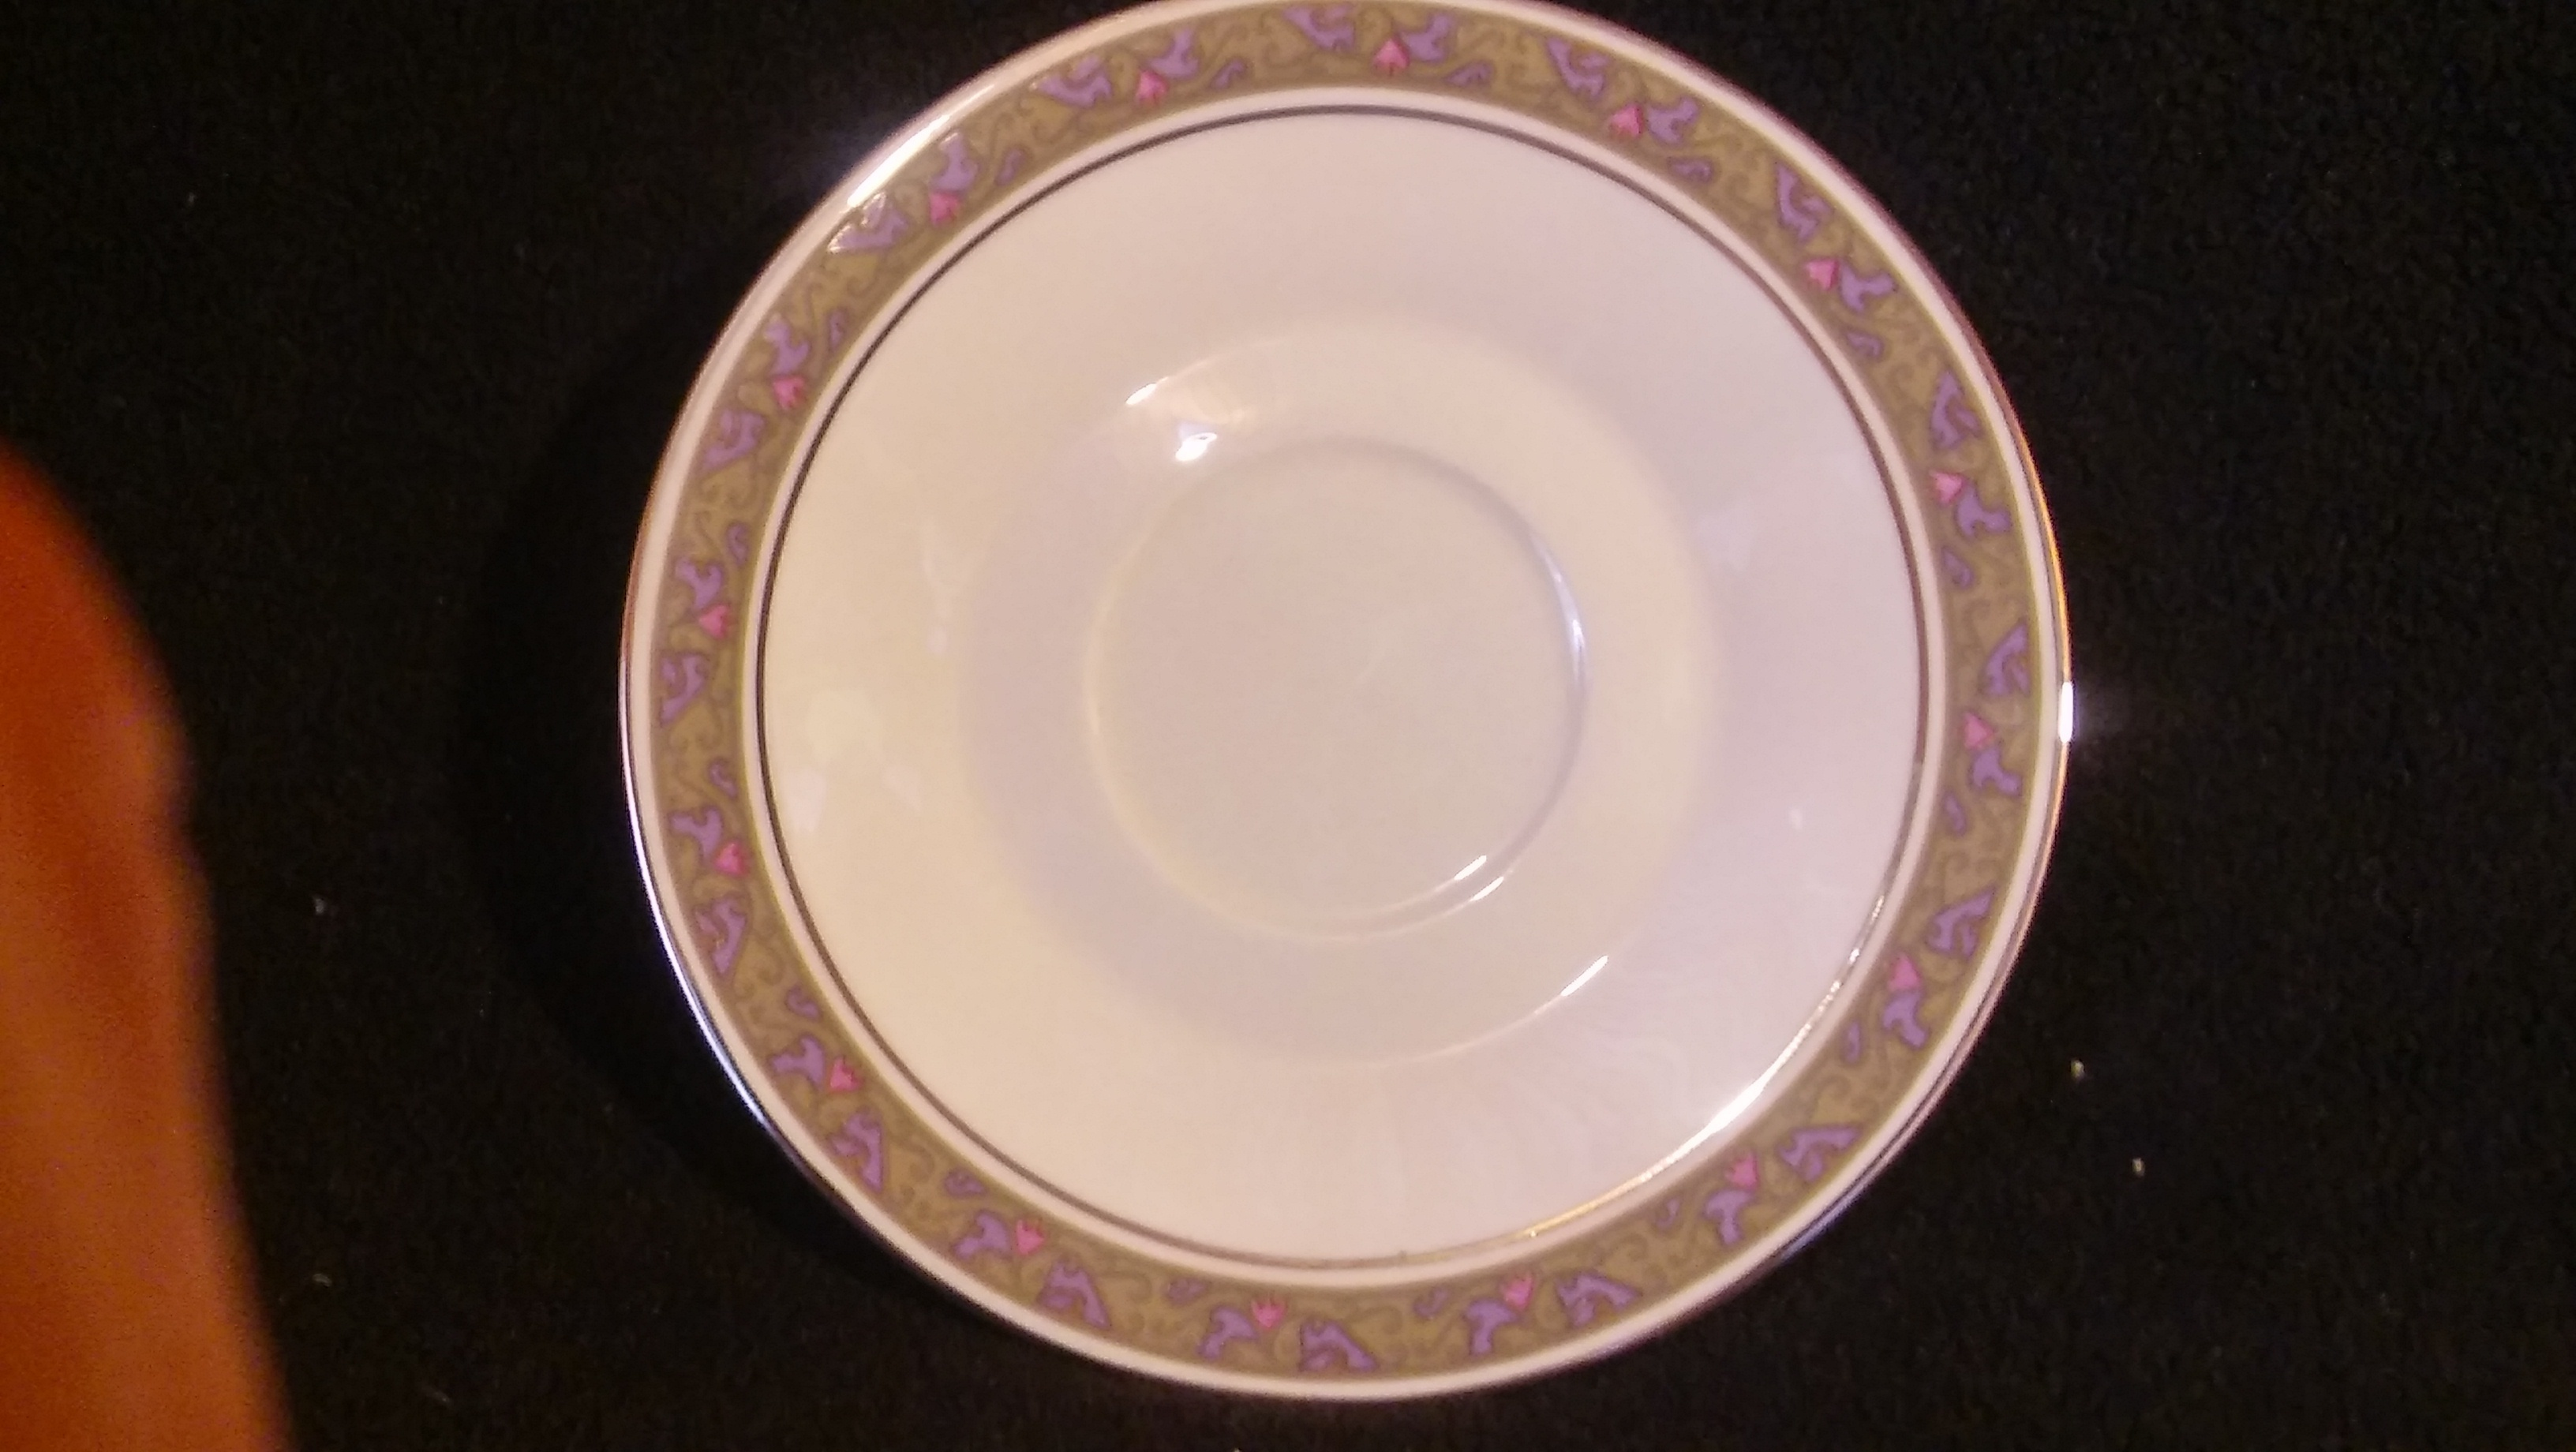 franciscan masterpiece china dinner plate 10 1 2 constantine